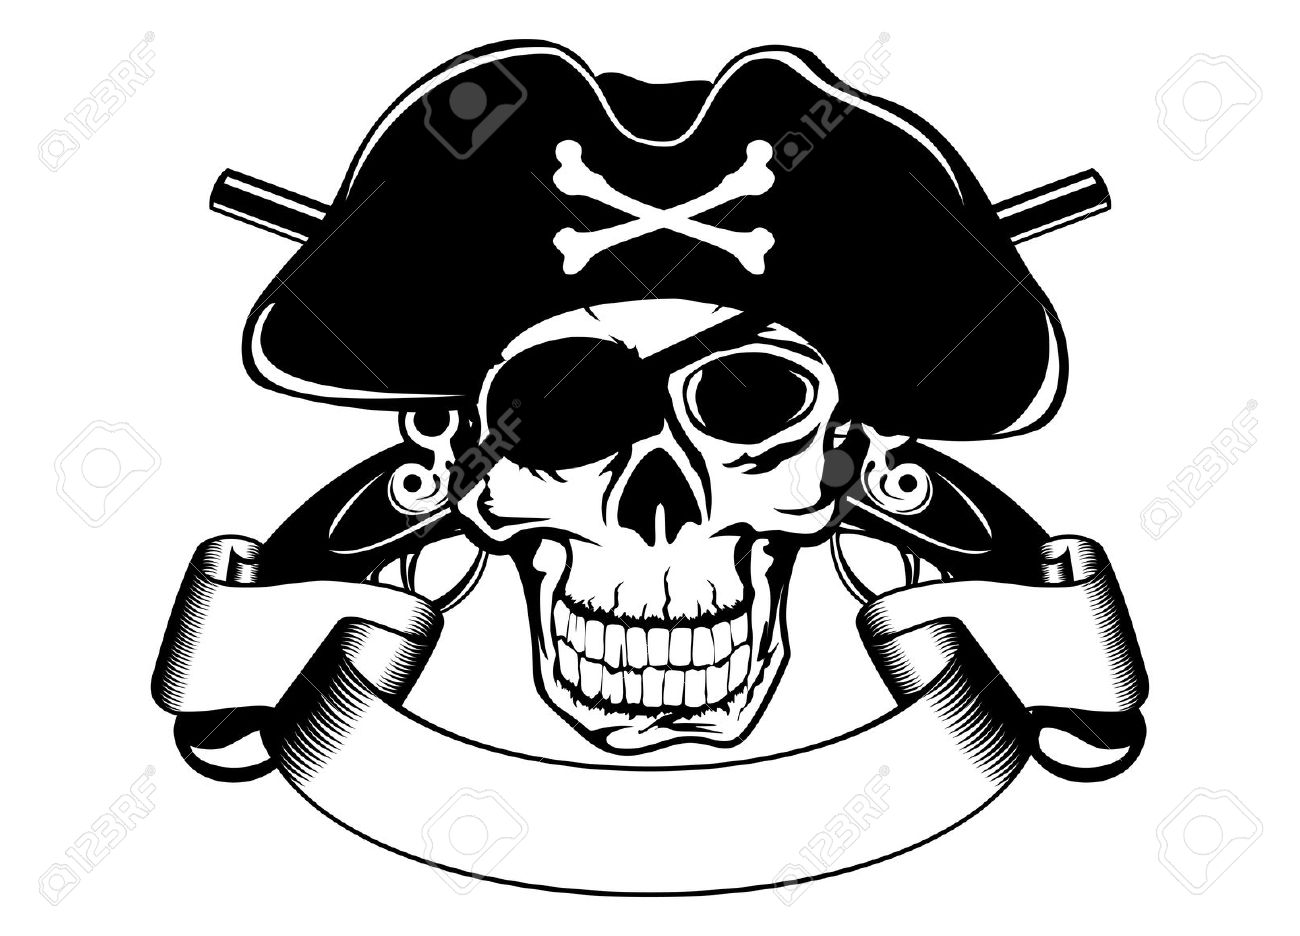 Pirates Of The Caribbean clipart black and white Clipart art pirates clip caribbean